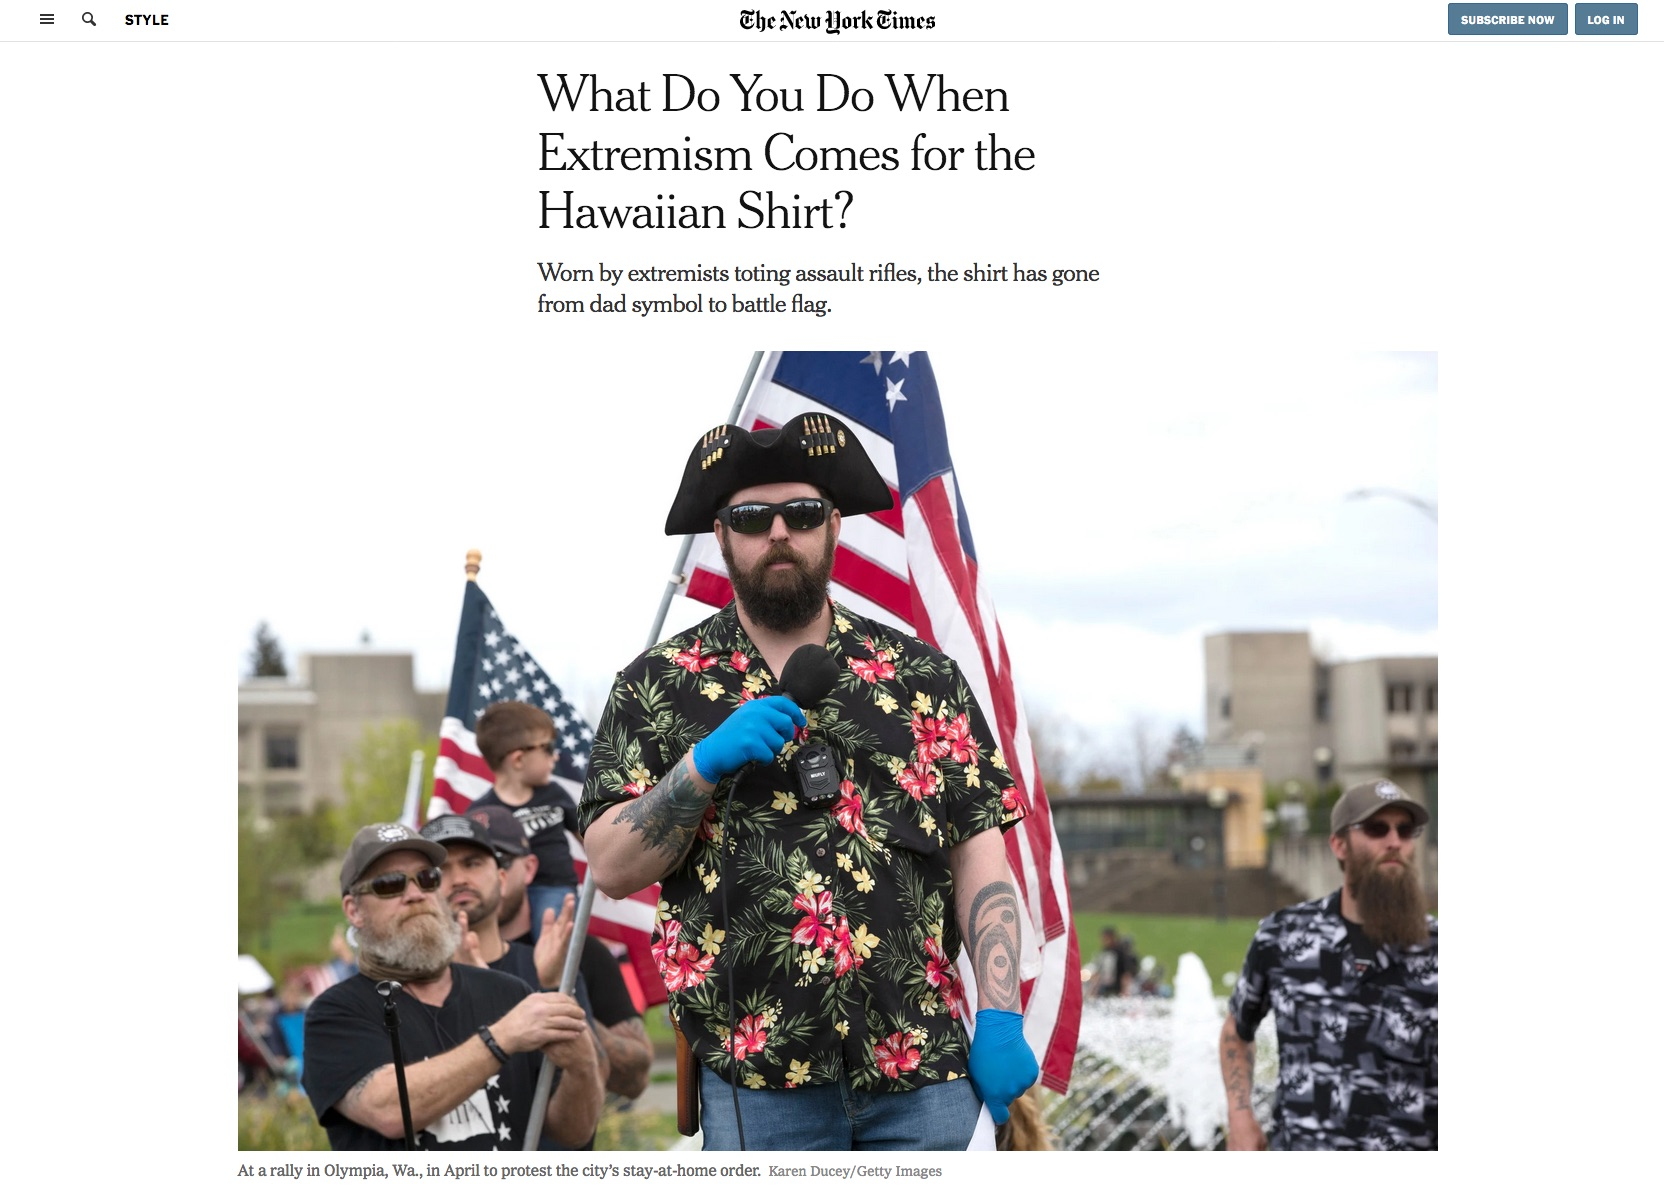 "{quote}What Do You Do When Extremism Comes for the Hawaiian Shirt?"" The New York Times, June 29, 2020."